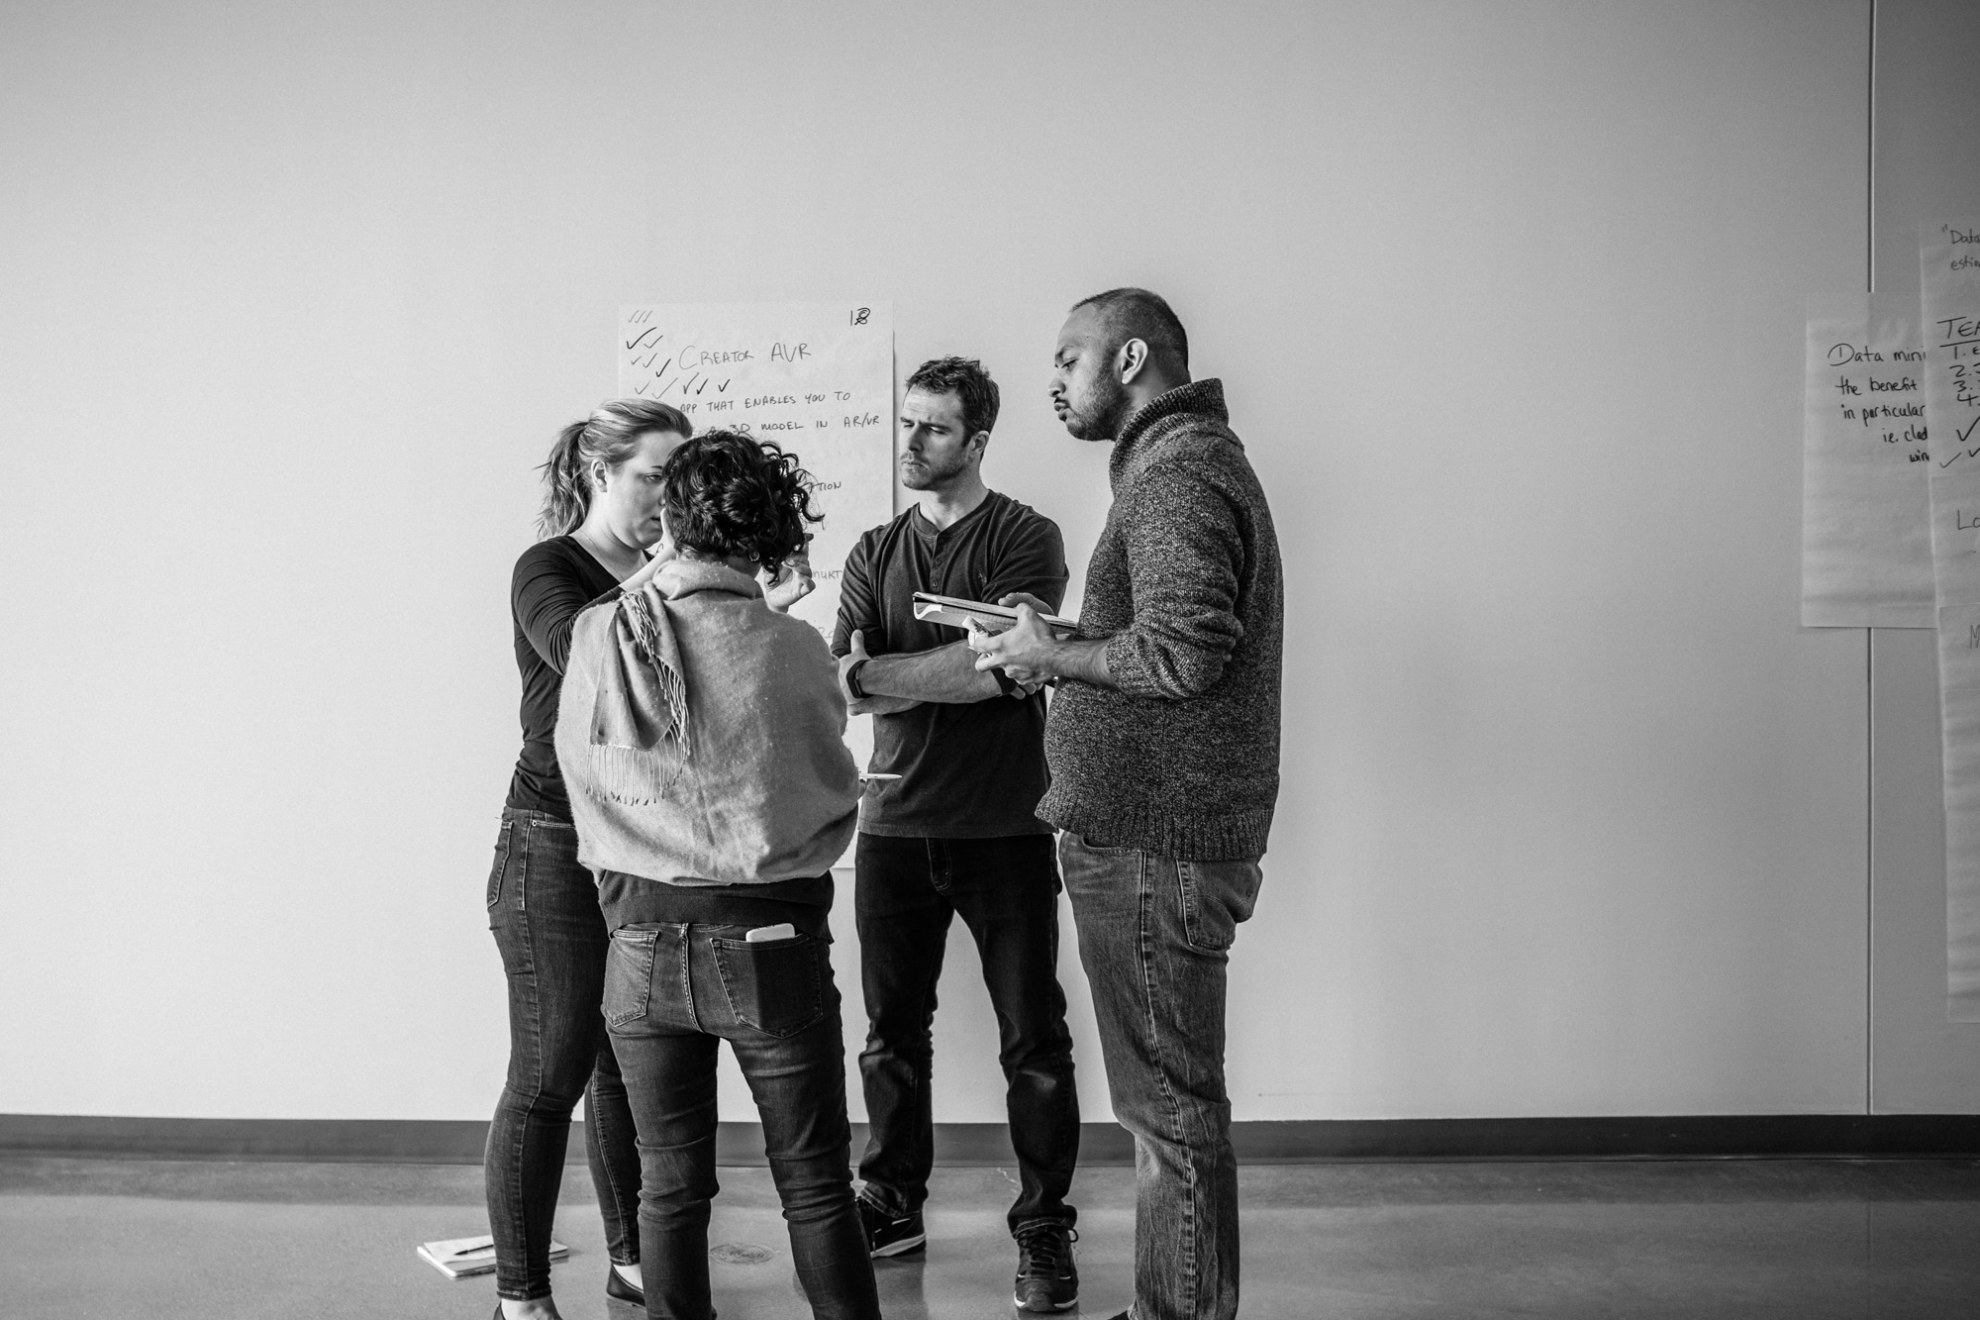 Group of people discussing an idea